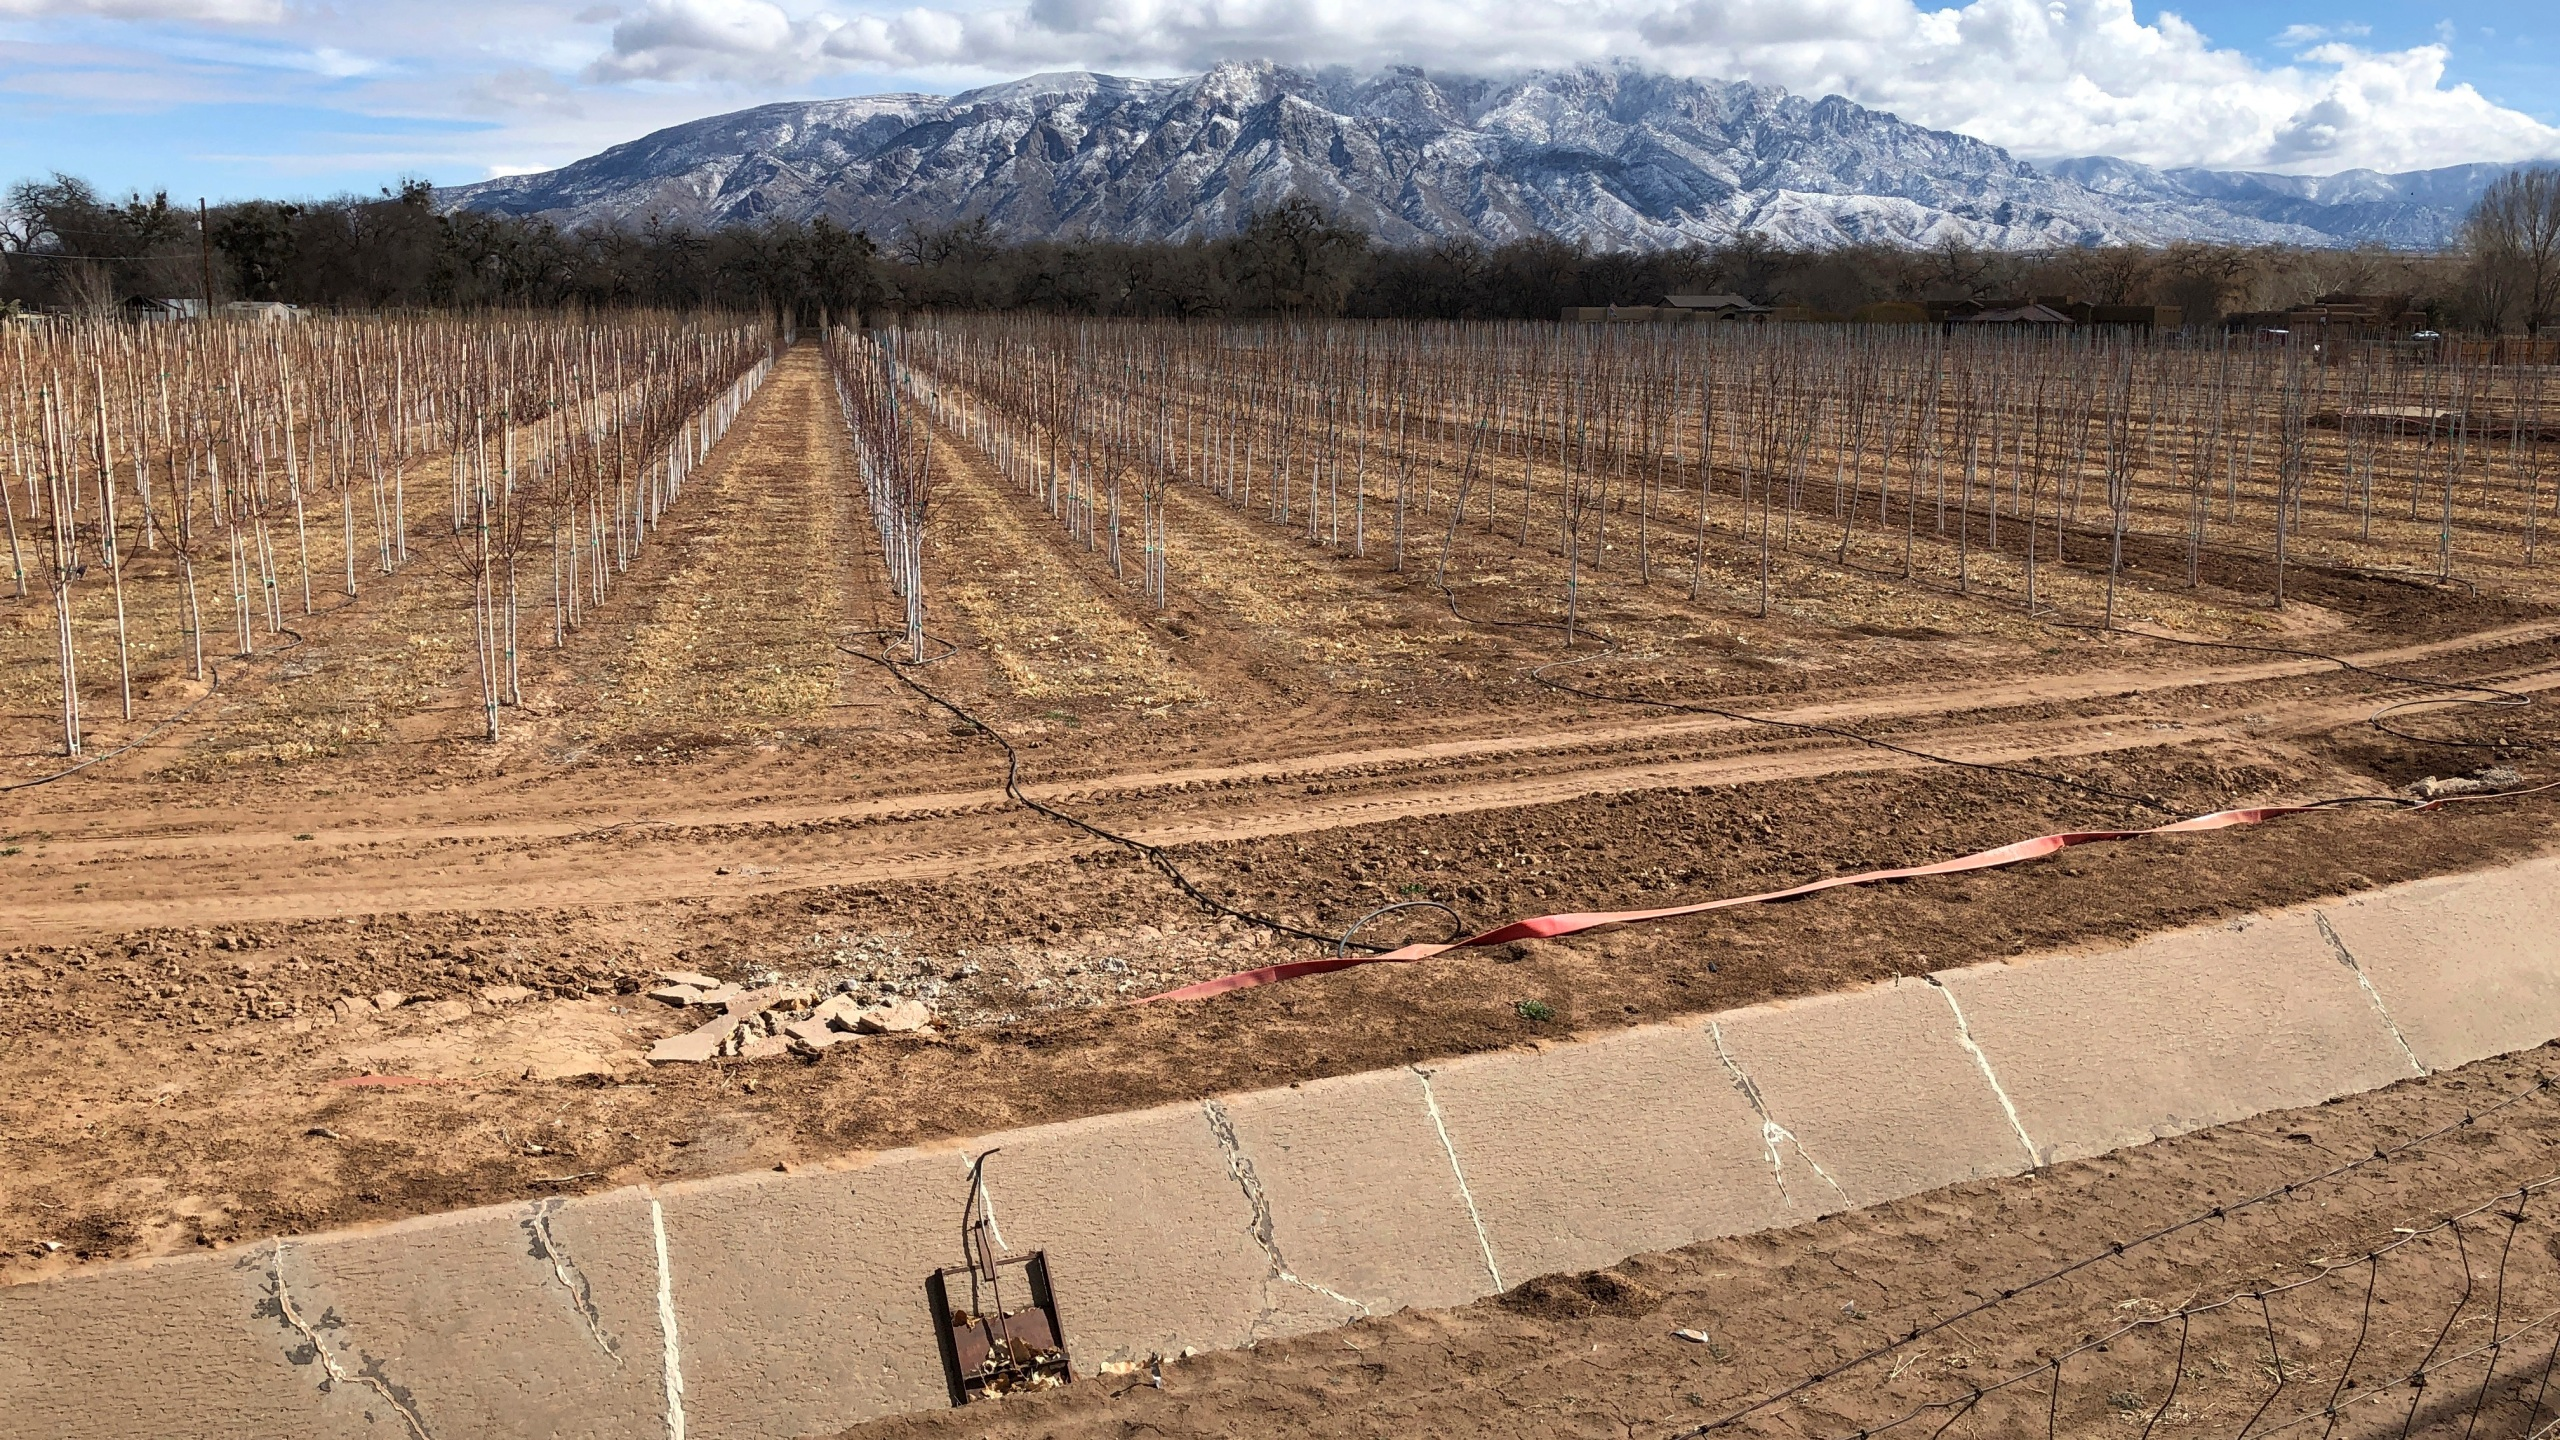 This Feb. 17, 2021 file photo shows an empty irrigation canal at a tree farm in Corrales, N.M., with the Sandia Mountains in the background, as much of the West is mired in drought, with New Mexico, Arizona, Nevada and Utah being among the hardest hit. (AP Photo/Susan Montoya Bryan)